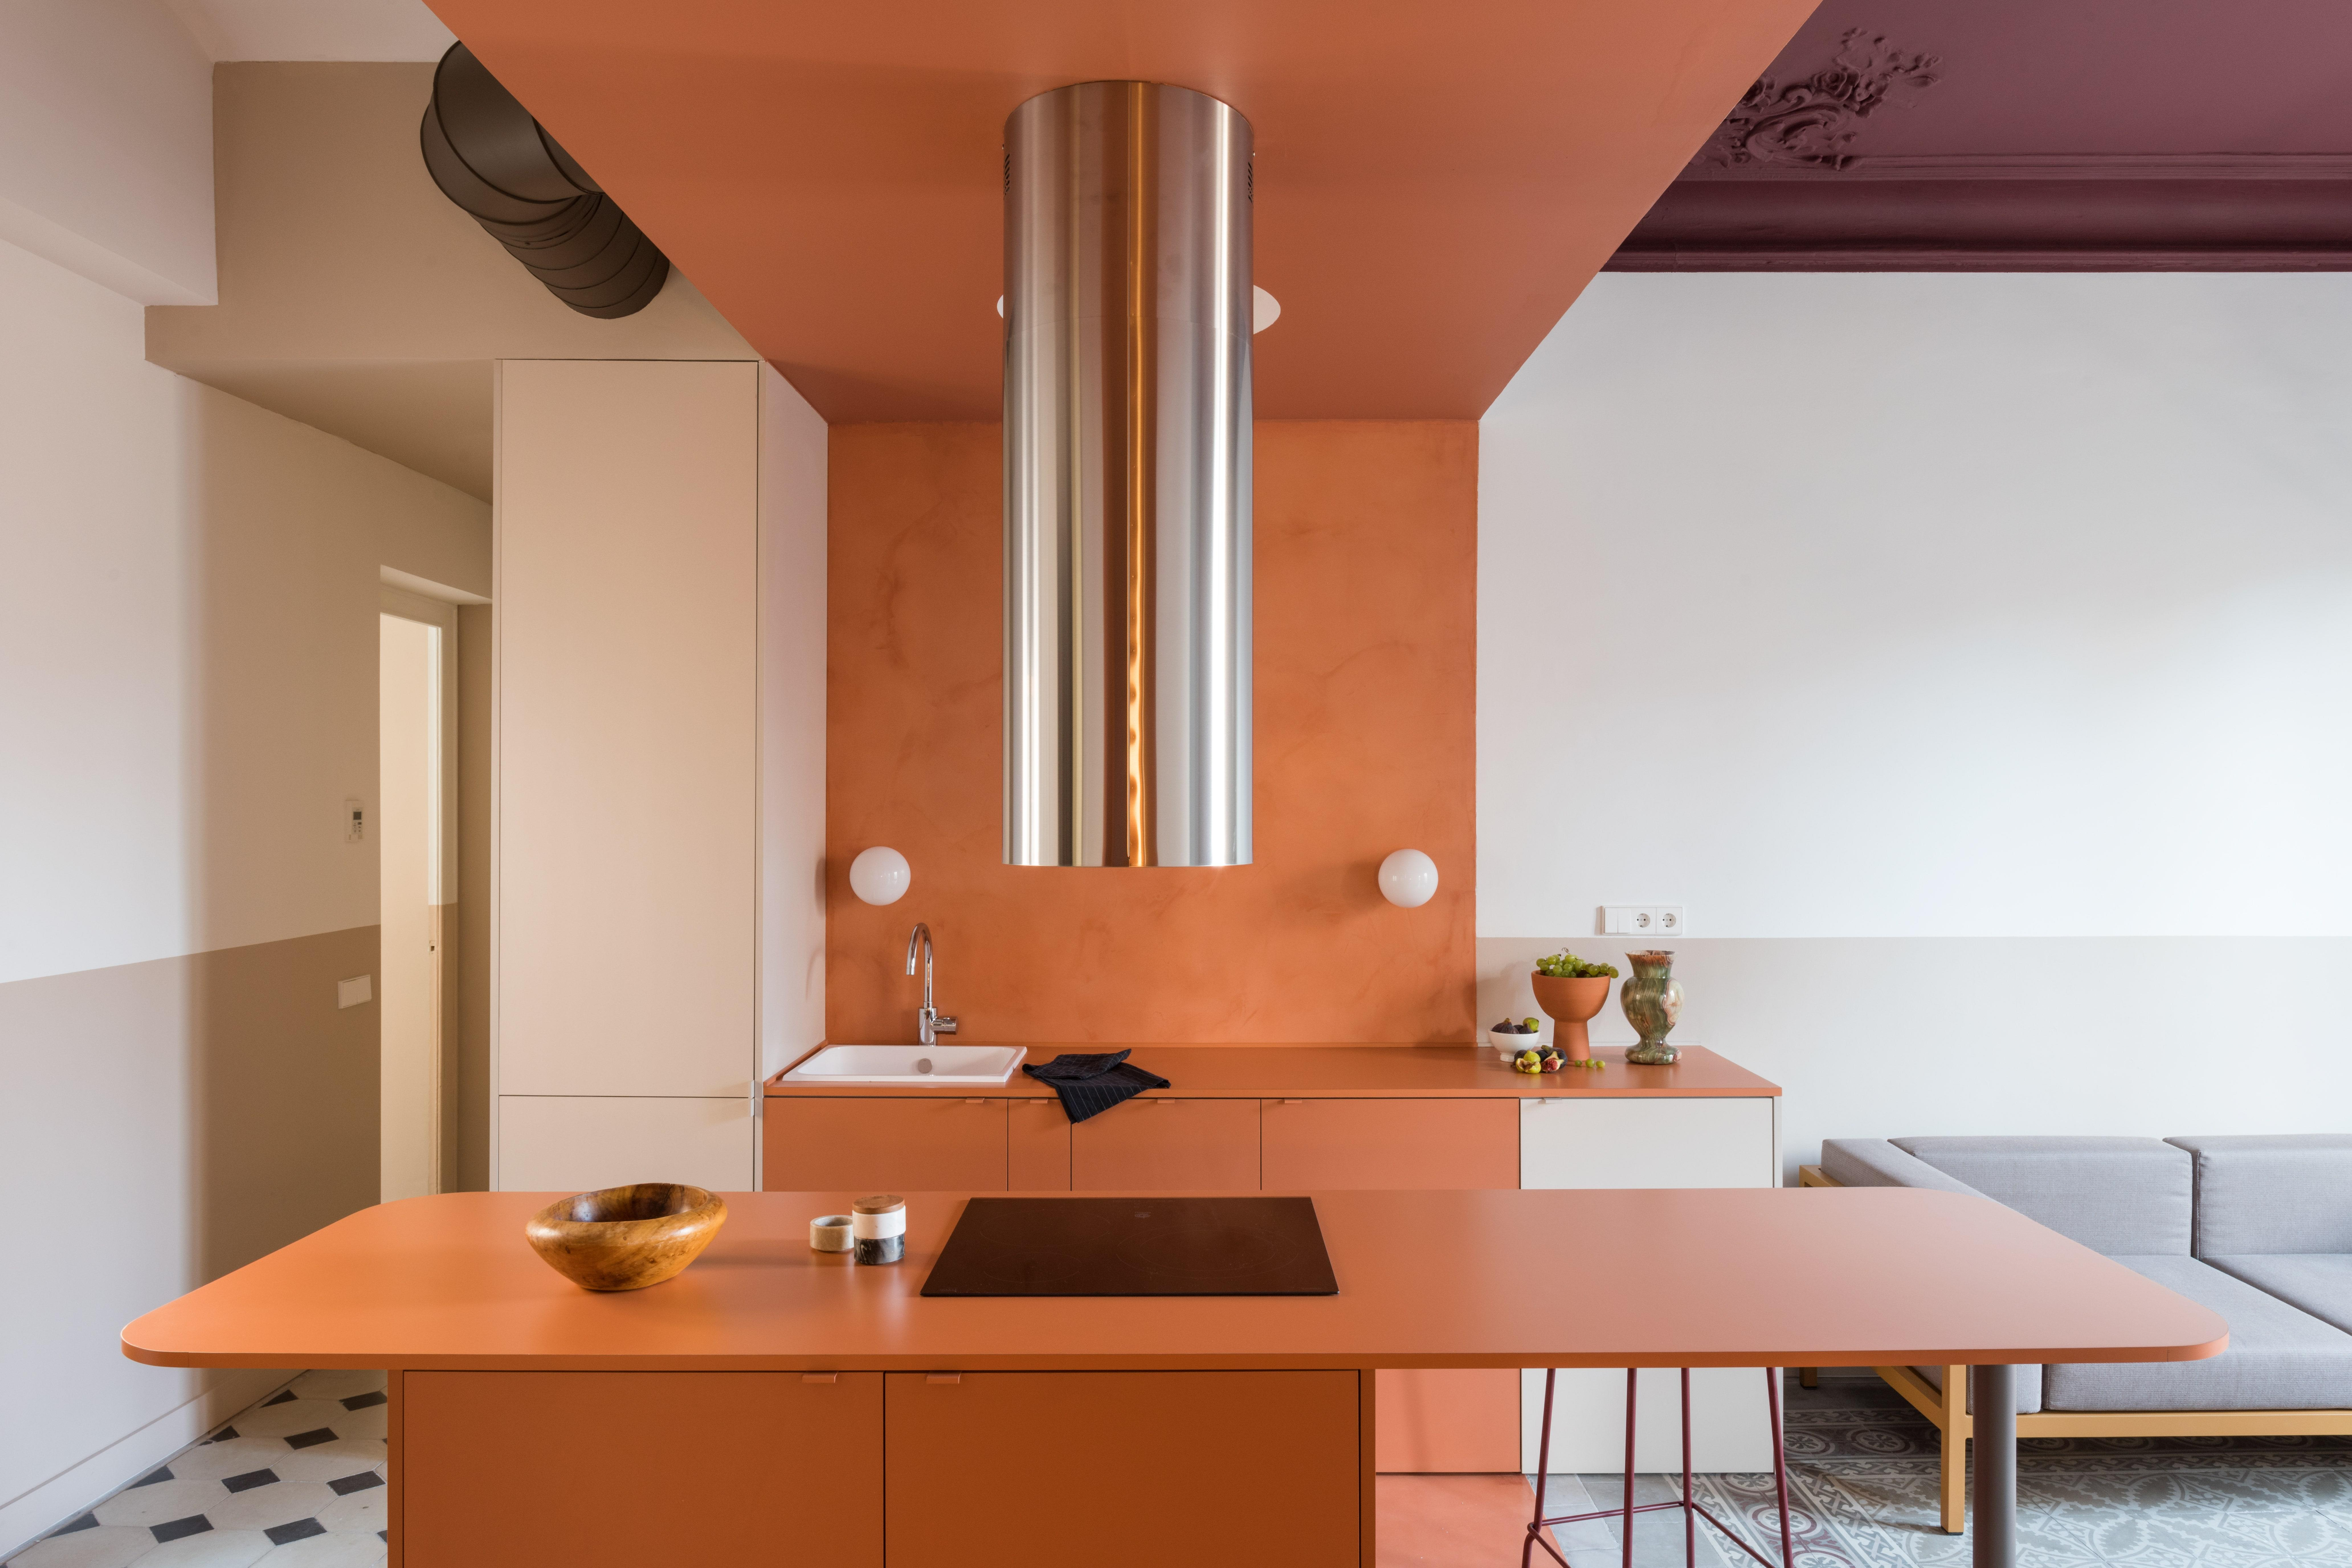 """California-based interior designer Marta Klinker worked with architects Andrea Serboli and Matteo Colombo of <a href=""""http://cargocollective.com/CaSA"""" rel=""""nofollow noopener"""" target=""""_blank"""" data-ylk=""""slk:CaSA"""" class=""""link rapid-noclick-resp"""">CaSA</a>, after the home she was renovating in <a href=""""https://www.architecturaldigest.com/story/after-a-tragic-fire-this-barcelona-apartment-was-rescued-by-color-blocking?mbid=synd_yahoo_rss"""" rel=""""nofollow noopener"""" target=""""_blank"""" data-ylk=""""slk:Barcelona"""" class=""""link rapid-noclick-resp"""">Barcelona</a> was destroyed in a fire. """"We came up with terra-cotta as an inexpensive solution for the kitchen countertops,"""" Matteo says. """"We found this color in <a href=""""https://www.architecturaldigest.com/story/behold-a-bold-solution-for-the-indecisive-renovator?mbid=synd_yahoo_rss"""" rel=""""nofollow noopener"""" target=""""_blank"""" data-ylk=""""slk:formica"""" class=""""link rapid-noclick-resp"""">formica</a>, and it did not look like a <a href=""""https://www.architecturaldigest.com/story/modern-laminate-design?mbid=synd_yahoo_rss"""" rel=""""nofollow noopener"""" target=""""_blank"""" data-ylk=""""slk:laminate"""" class=""""link rapid-noclick-resp"""">laminate</a>. So we decided to use it as a color-block in the kitchen and living area, to order the rest of the space."""""""